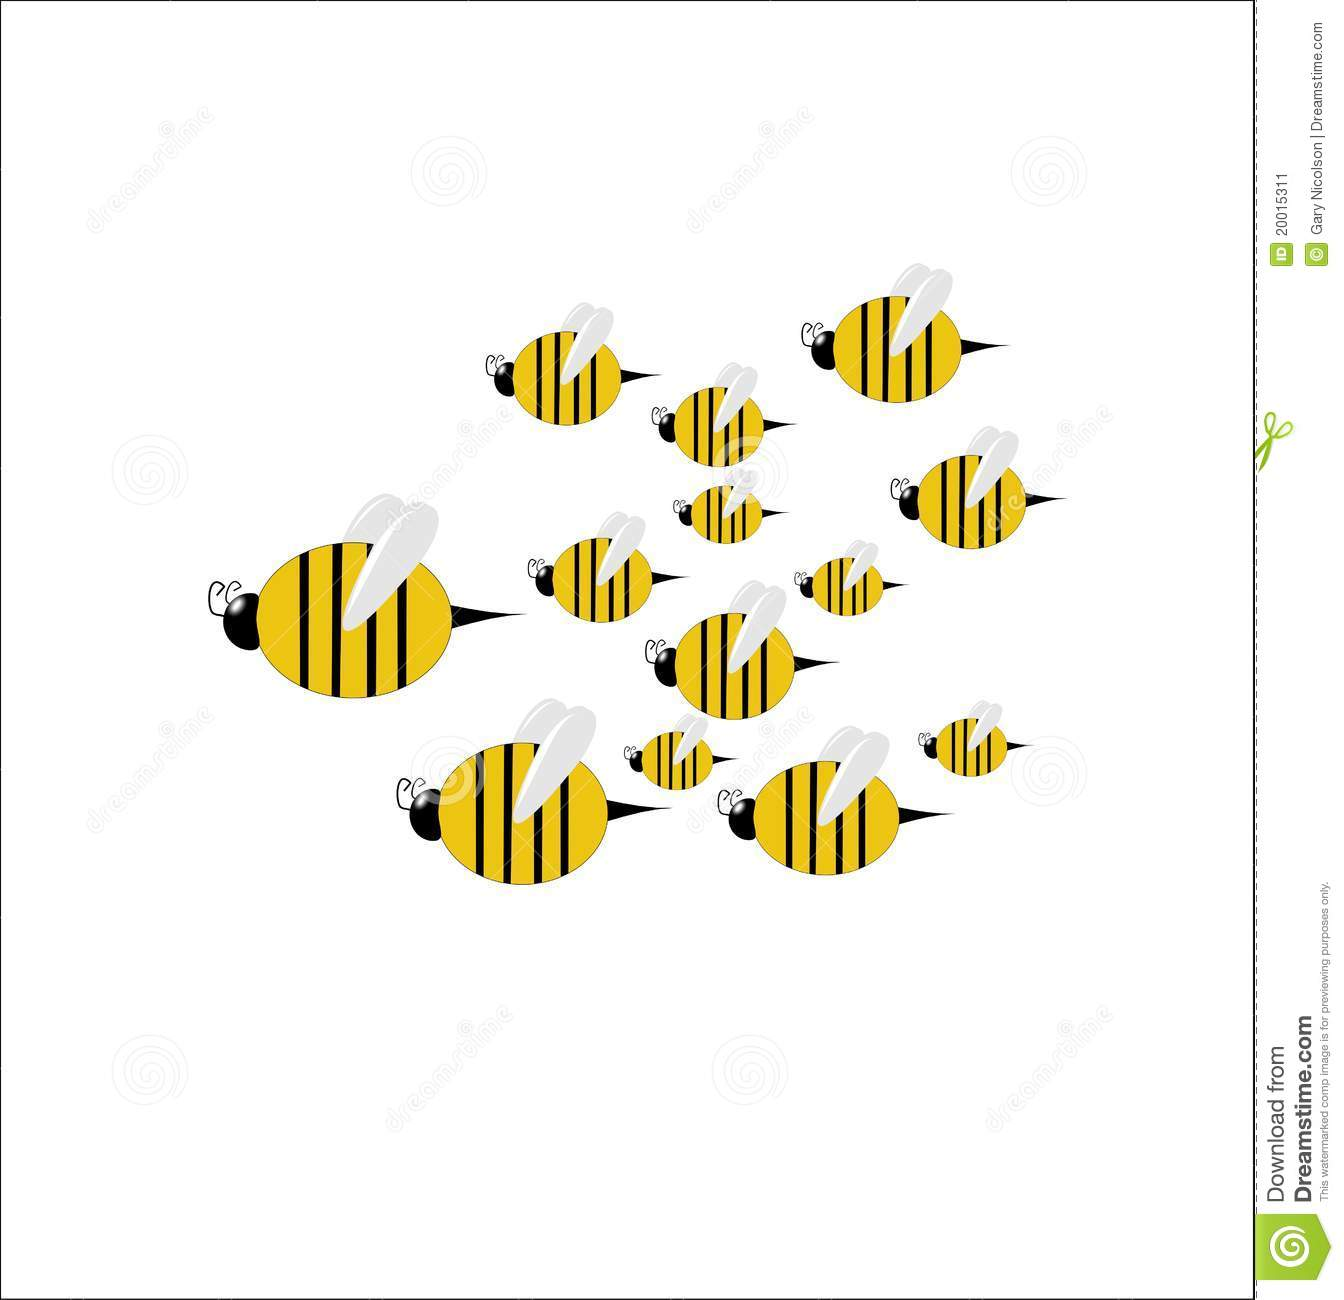 A swarm of bees clipart.